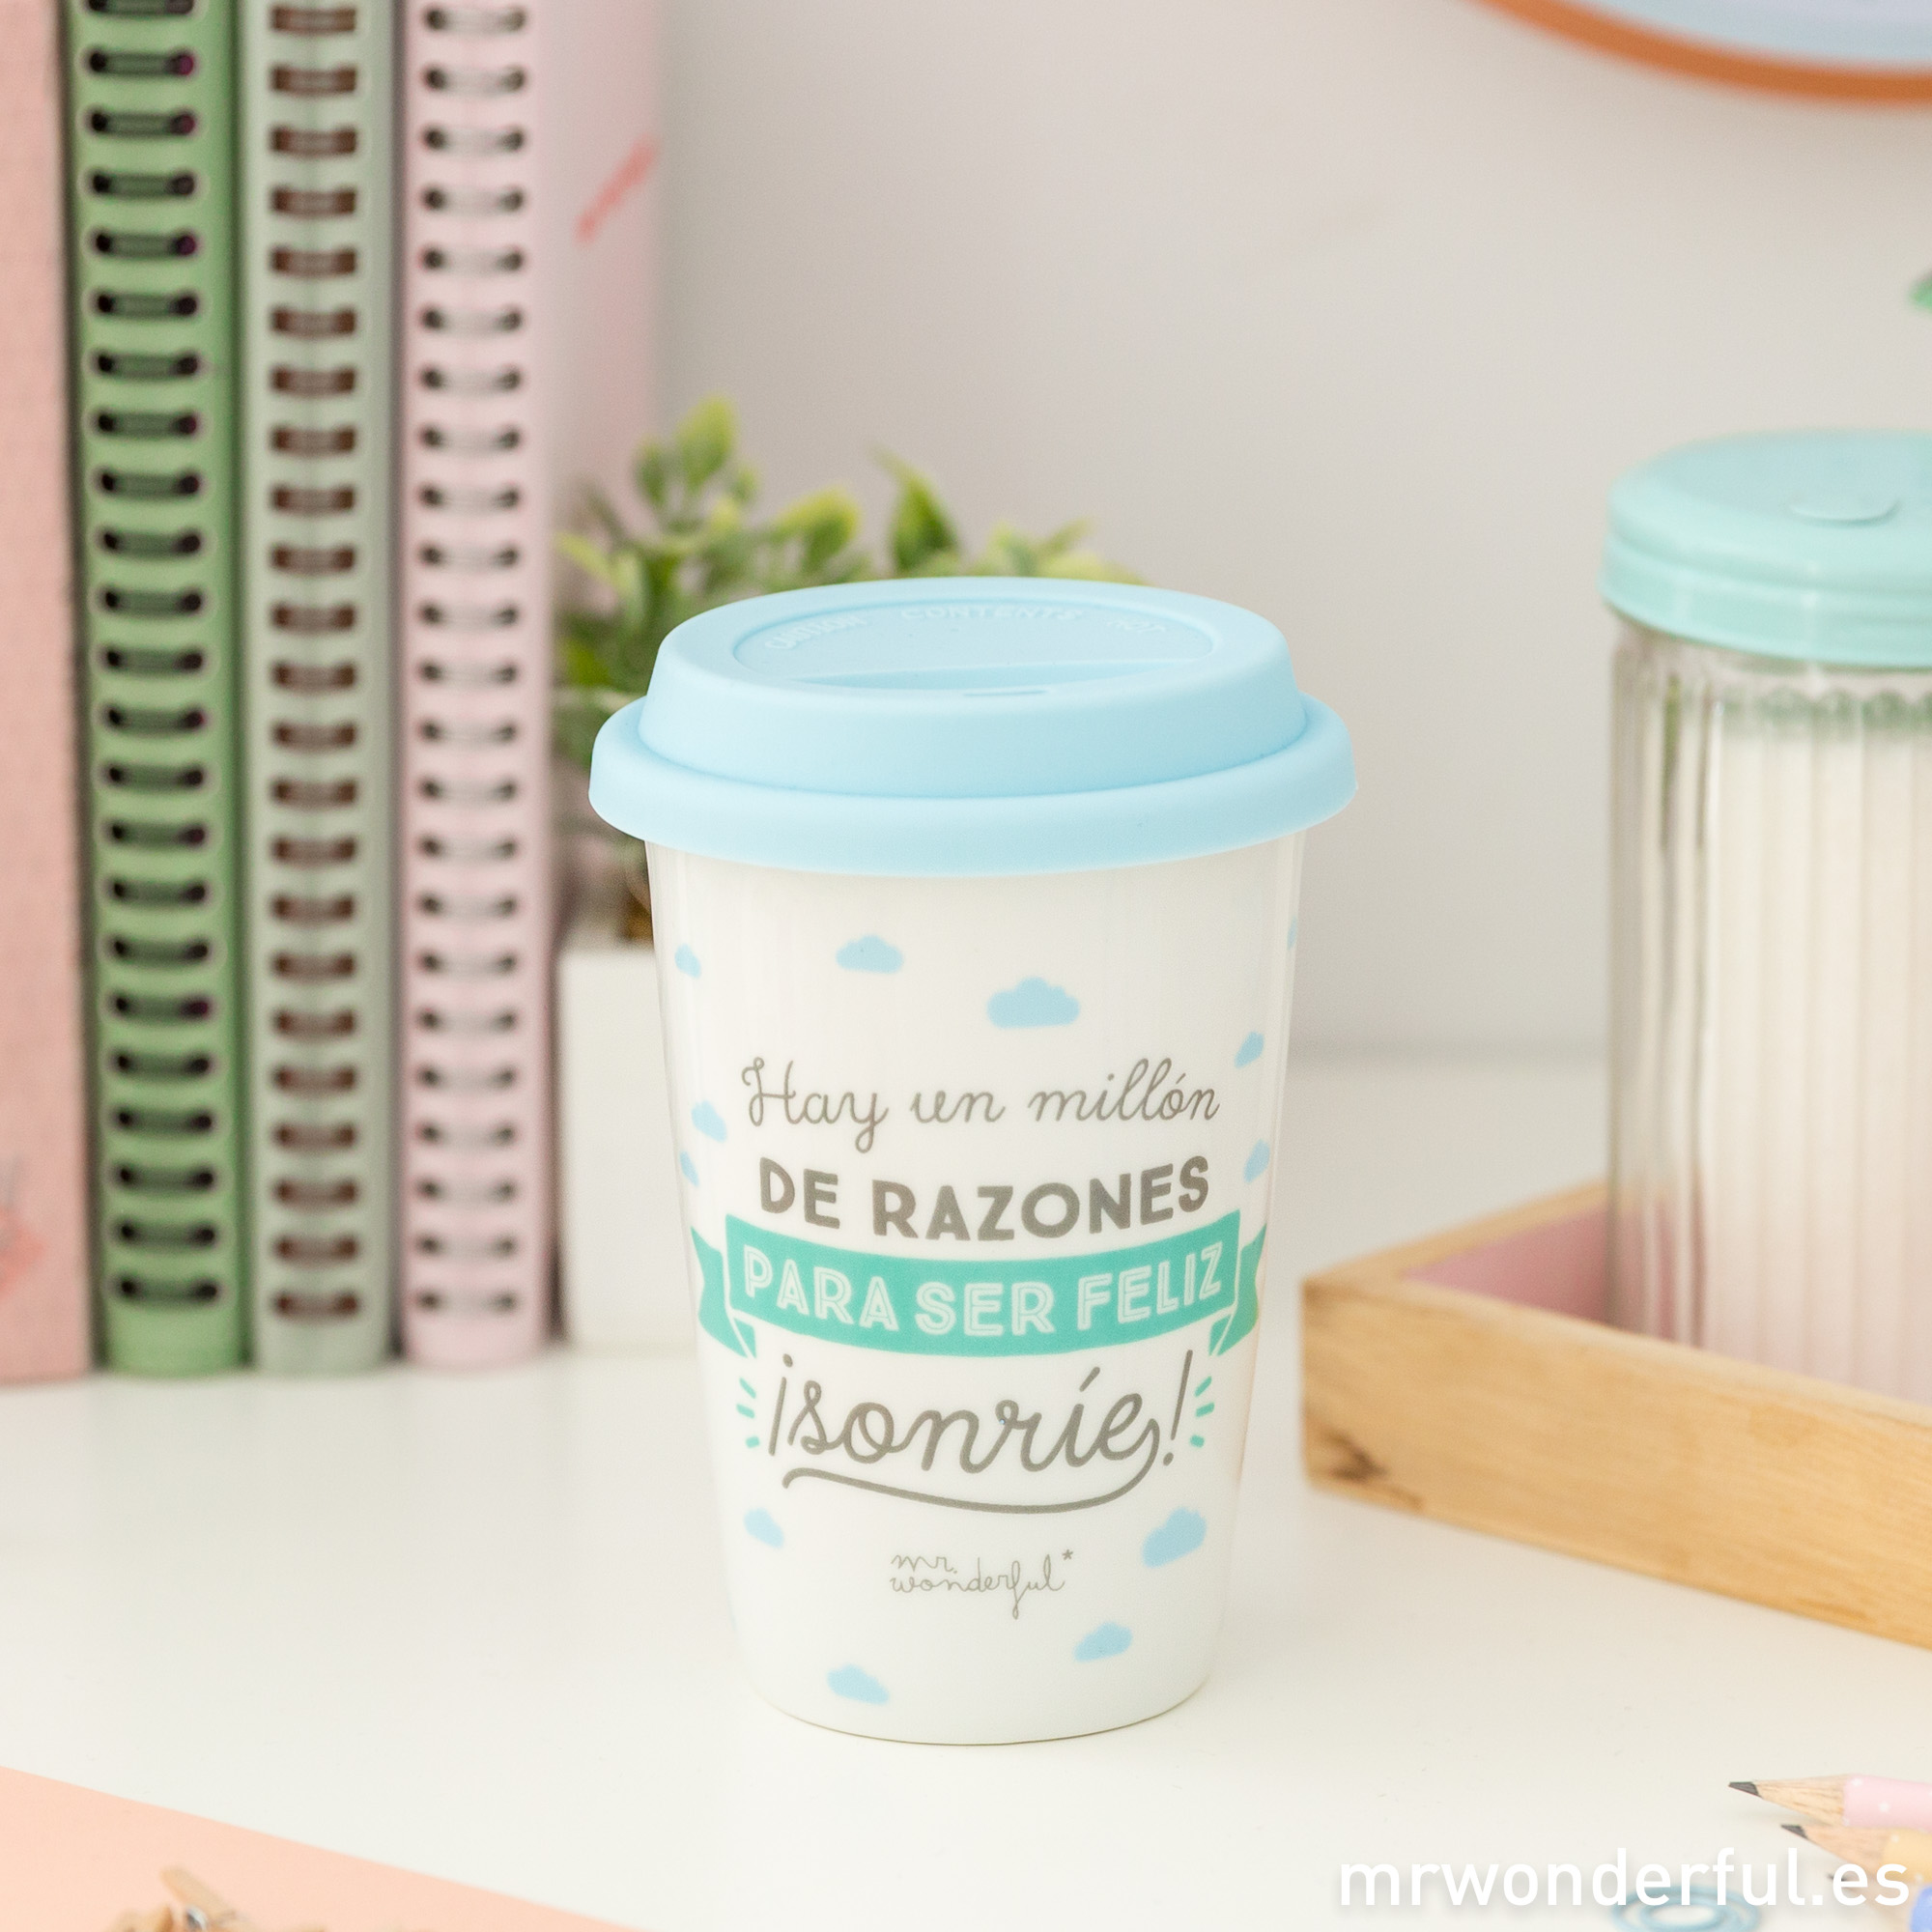 mrwonderful_8435460709620_WOA03798ES_take_away_hay-un-millon-de-razones-ES-13